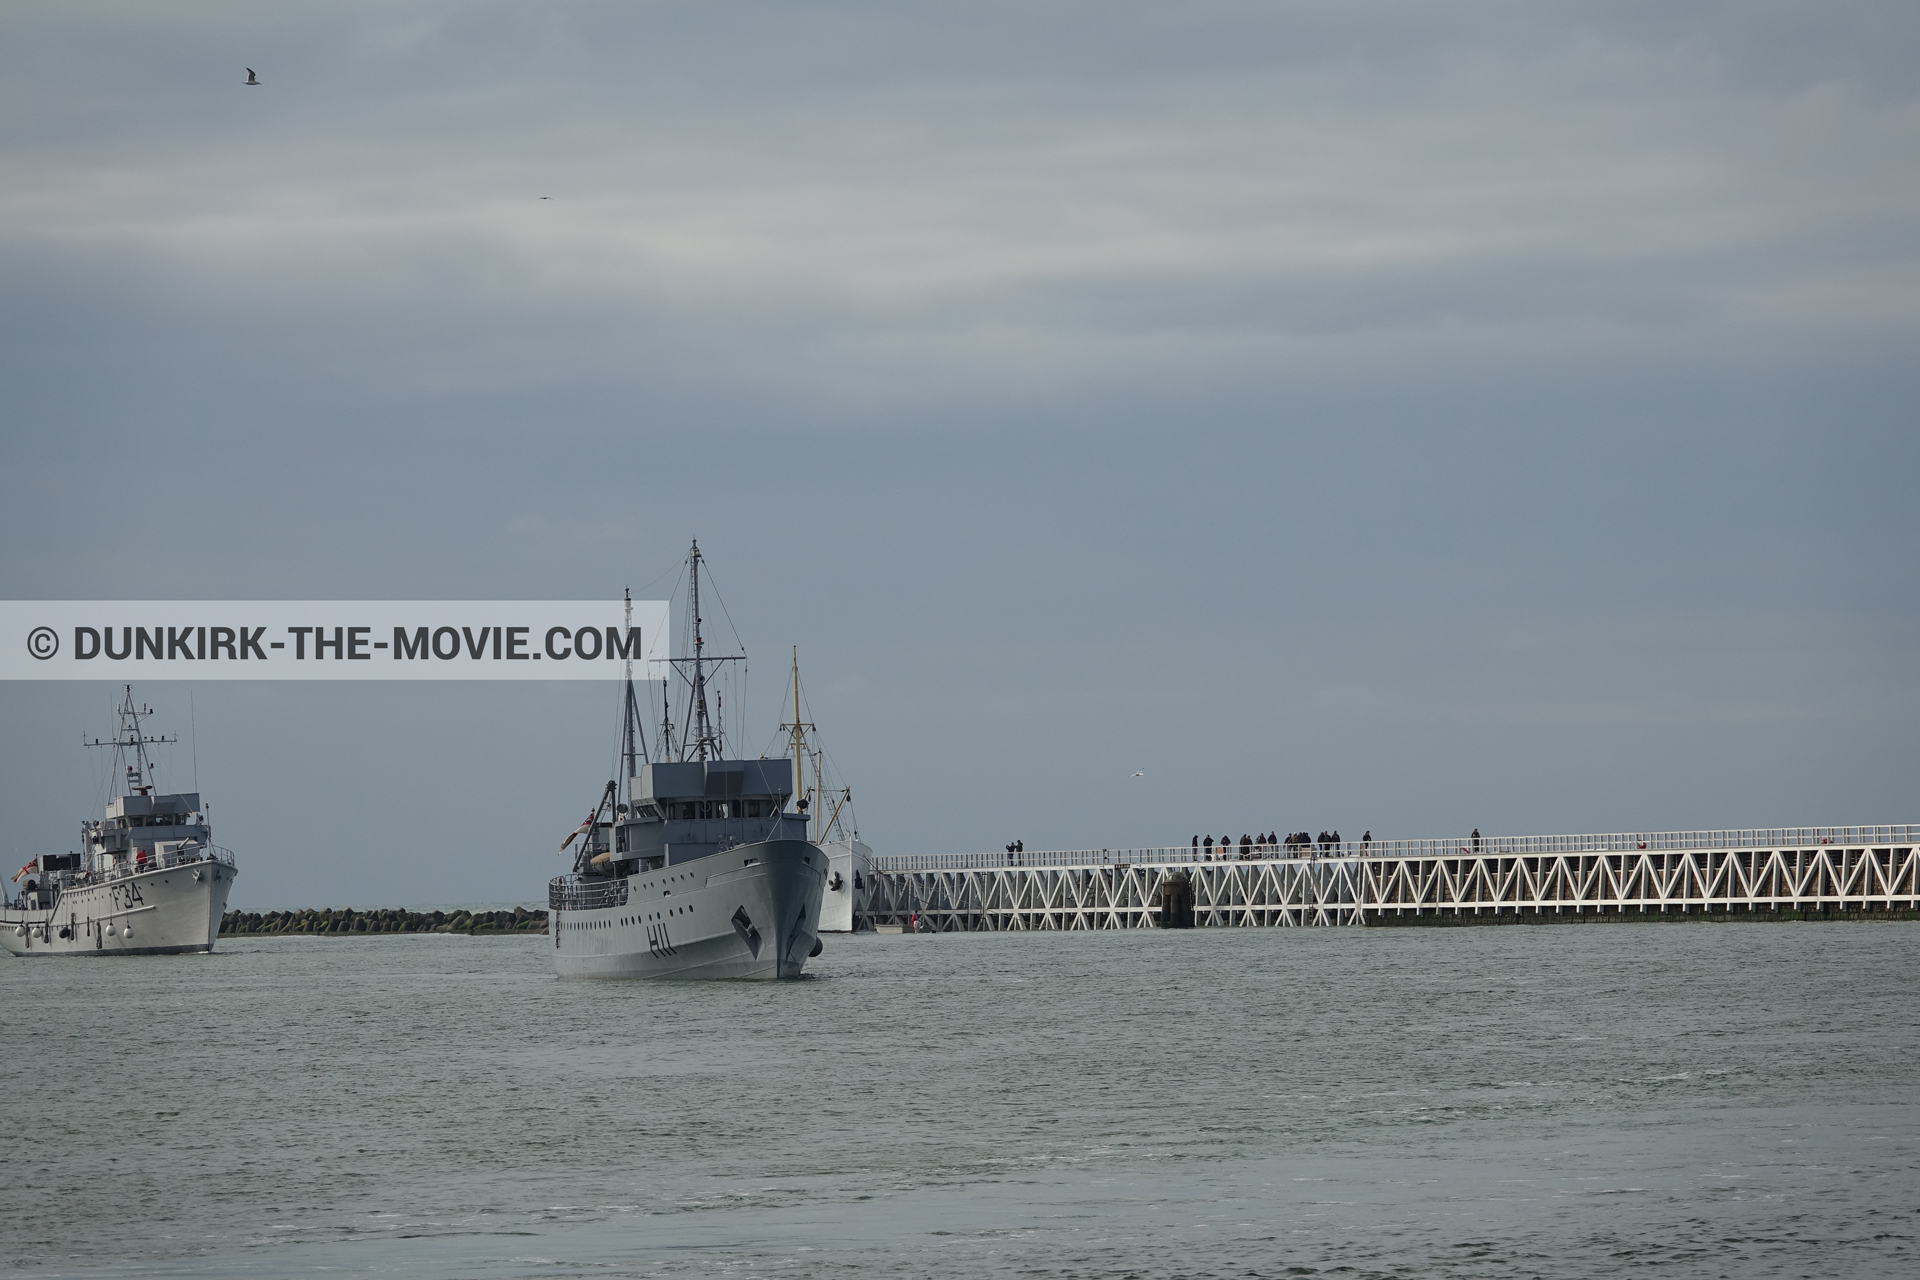 Picture with cloudy sky, F34 - Hr.Ms. Sittard, H11 - MLV Castor, EST pier, calm sea,  from behind the scene of the Dunkirk movie by Nolan